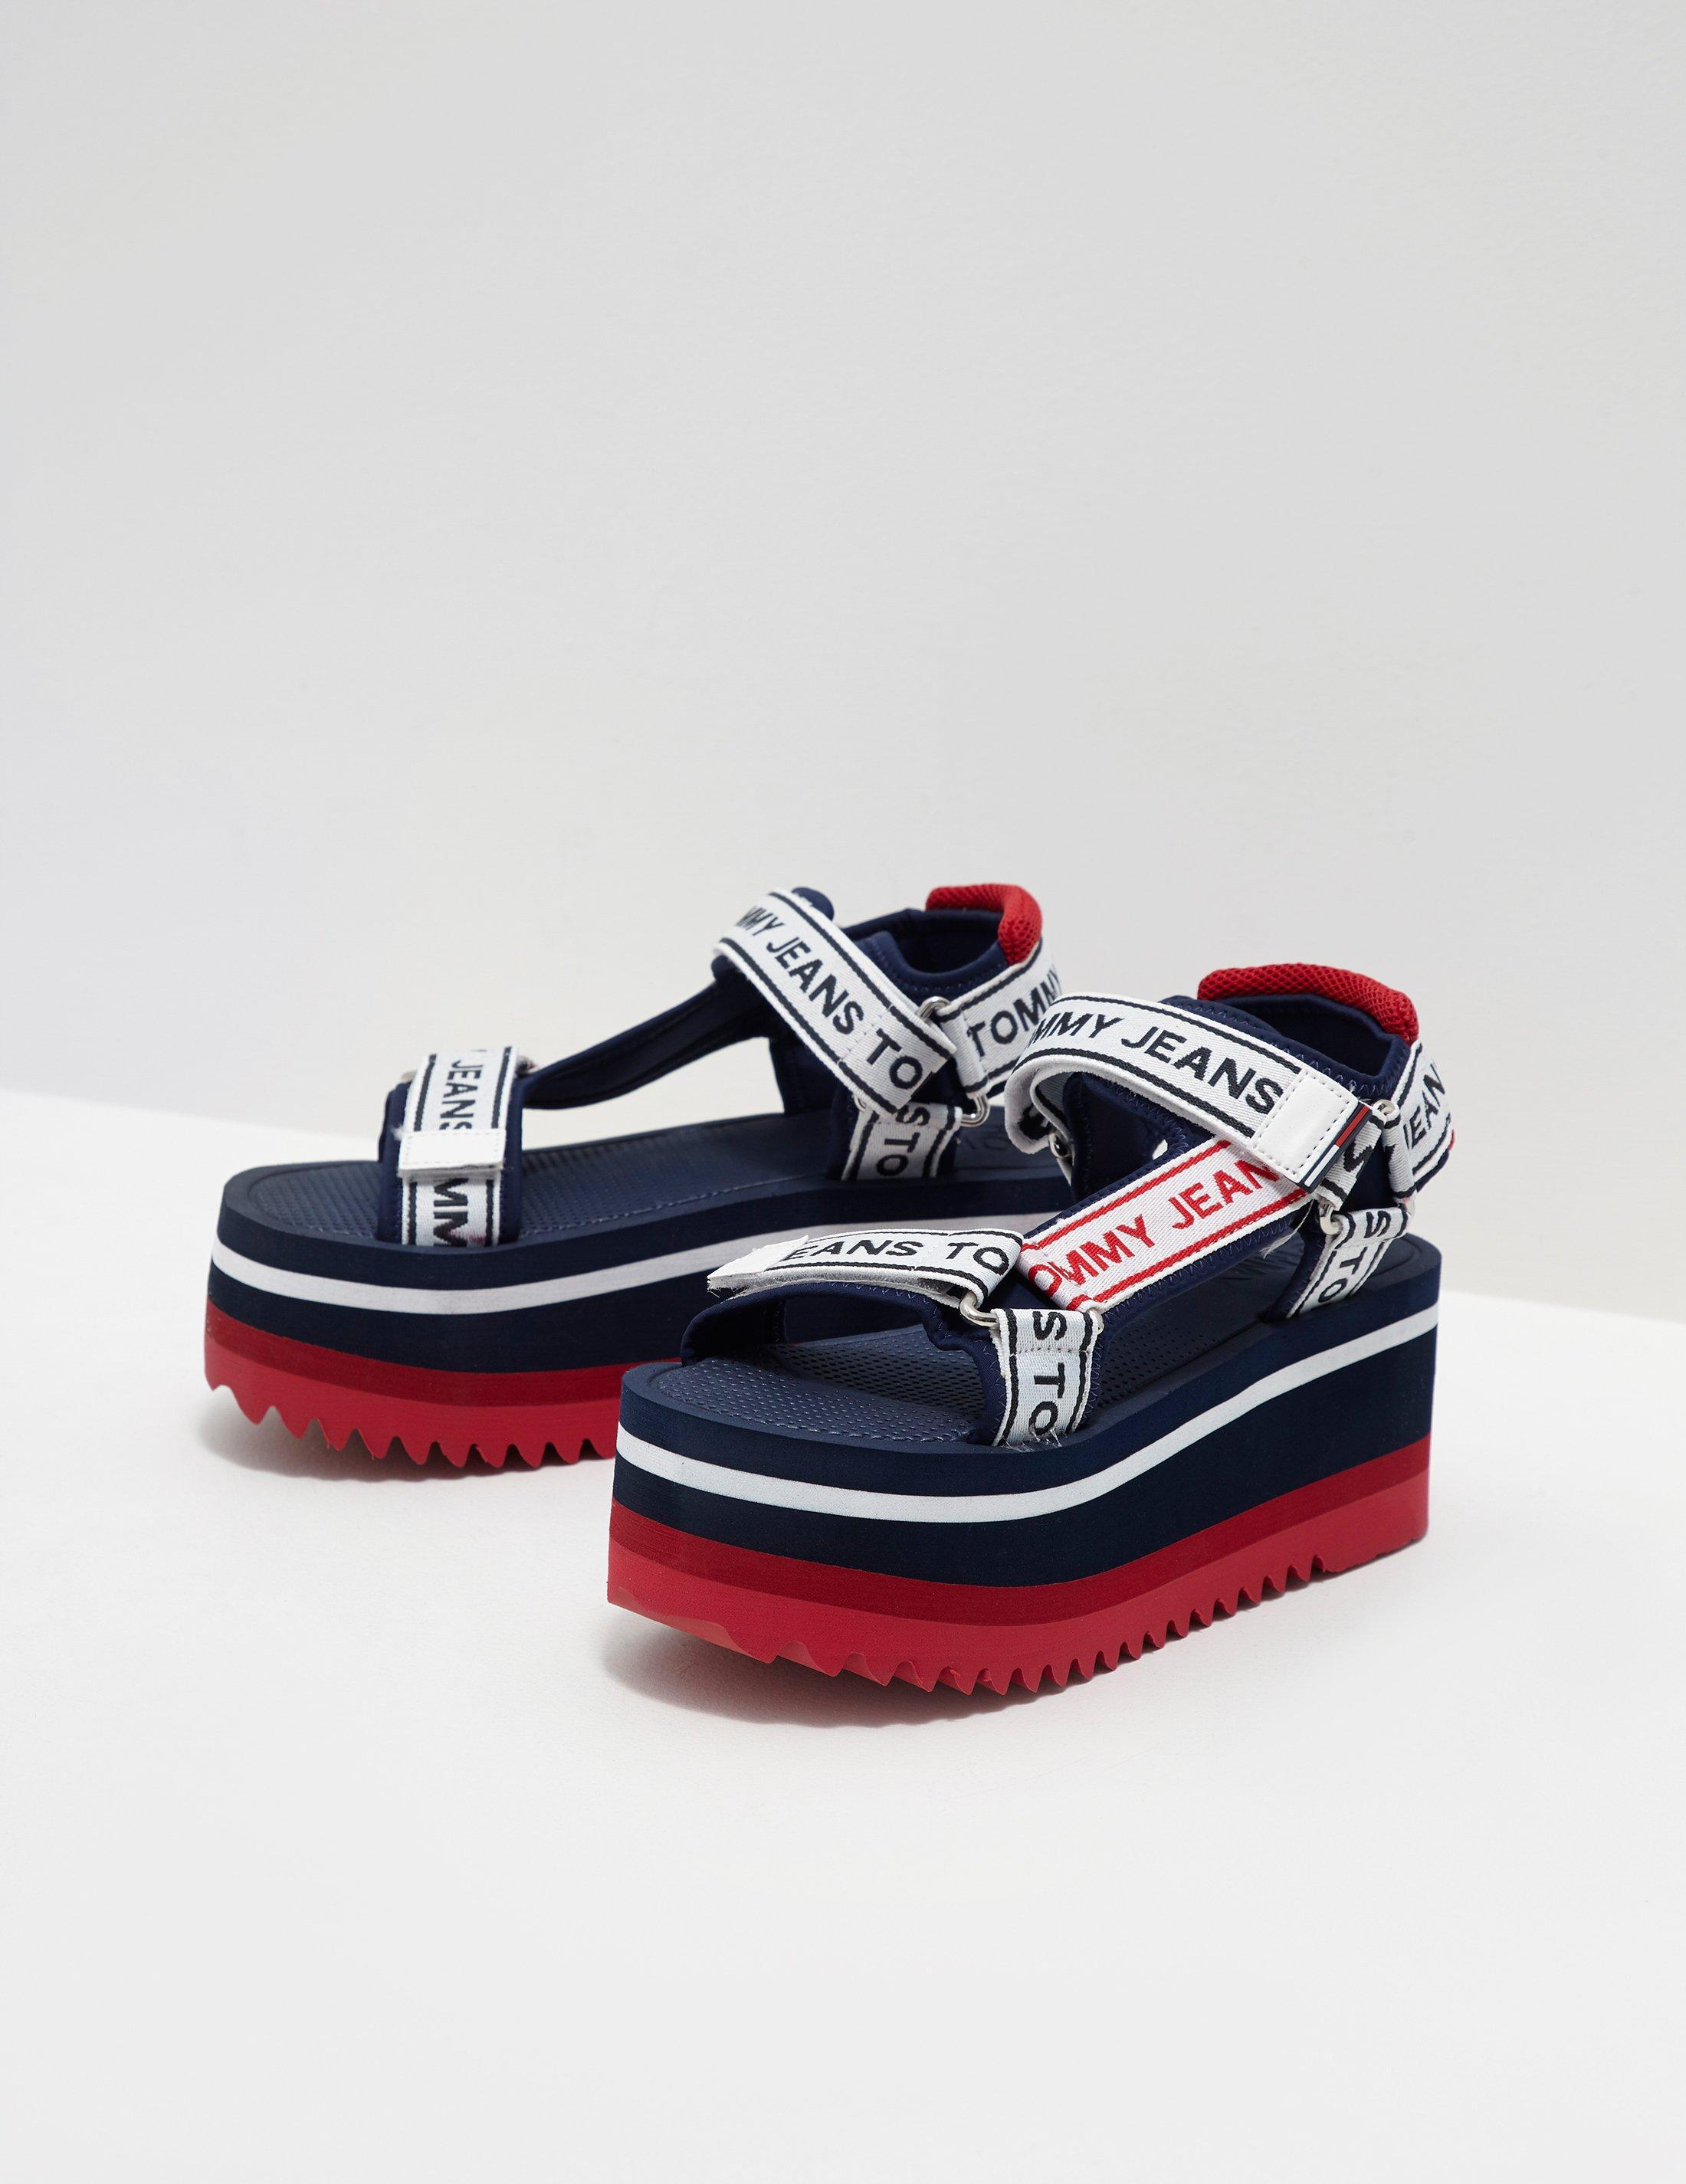 90809b95ff699d Tommy Hilfiger Womens Technical Platform Sandals Navy Blue in Blue ...